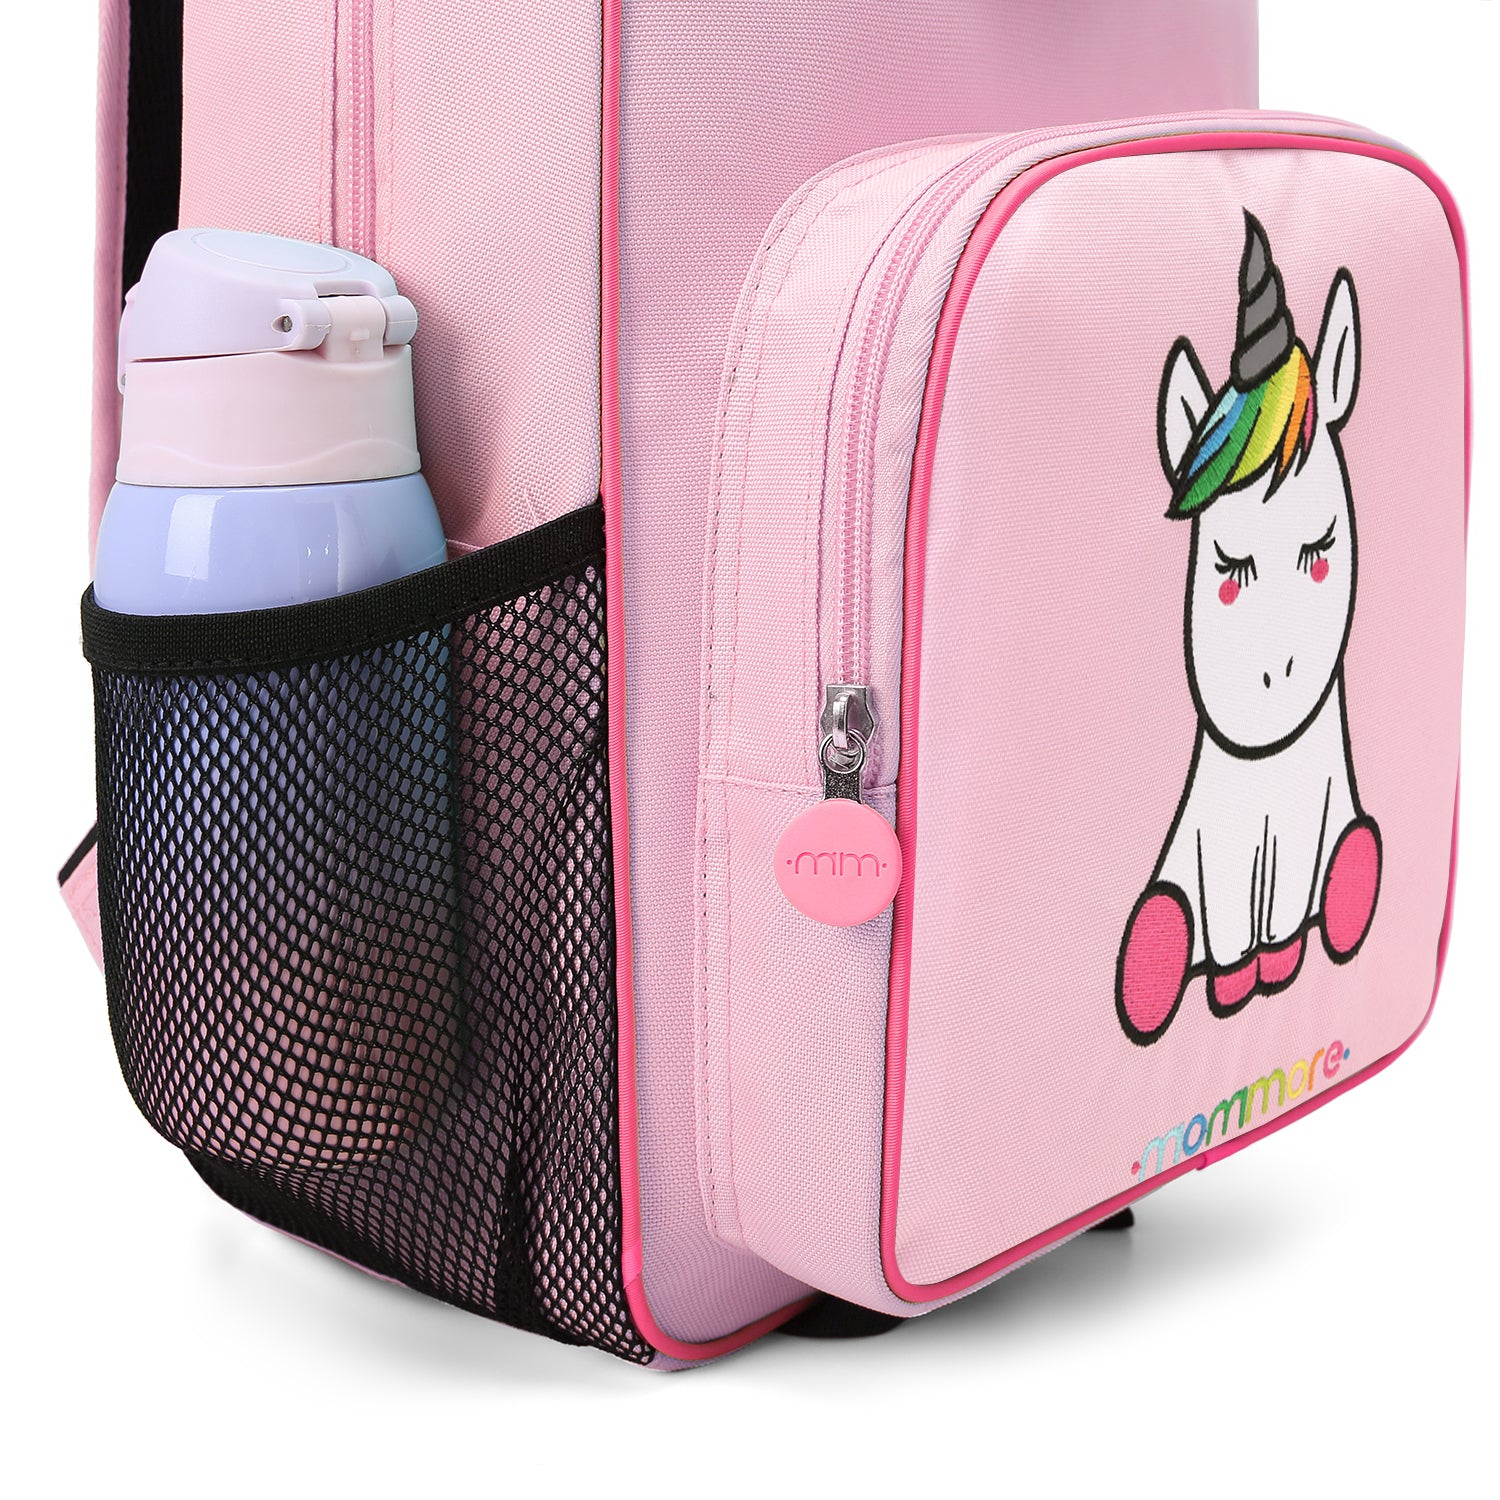 f3f162da8b 2 in 1 Cute Unicorn Little Kids Backpack with Insulated Lunch Bag for  Preschool Toddler Boys